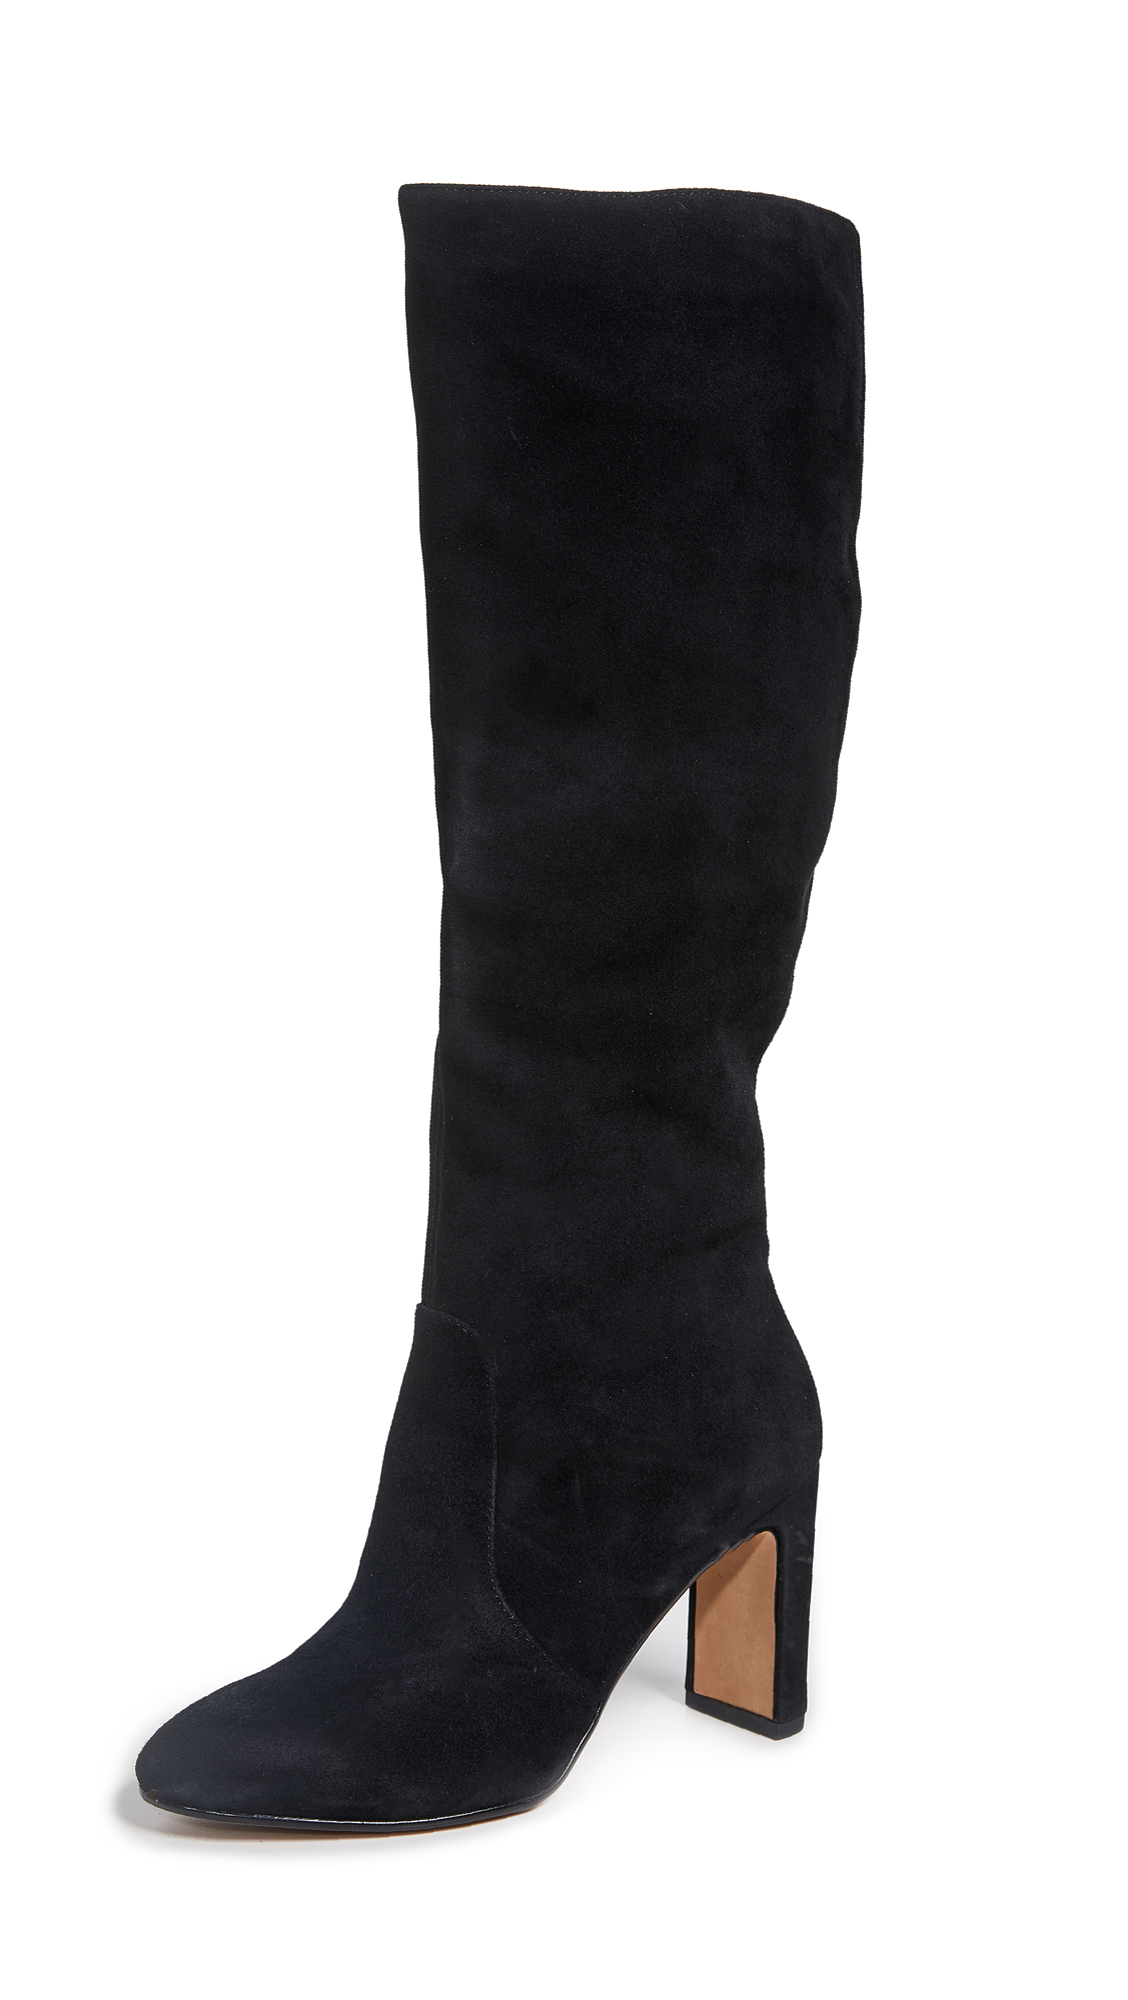 Dolce Vita Coop Tall Boots - Black